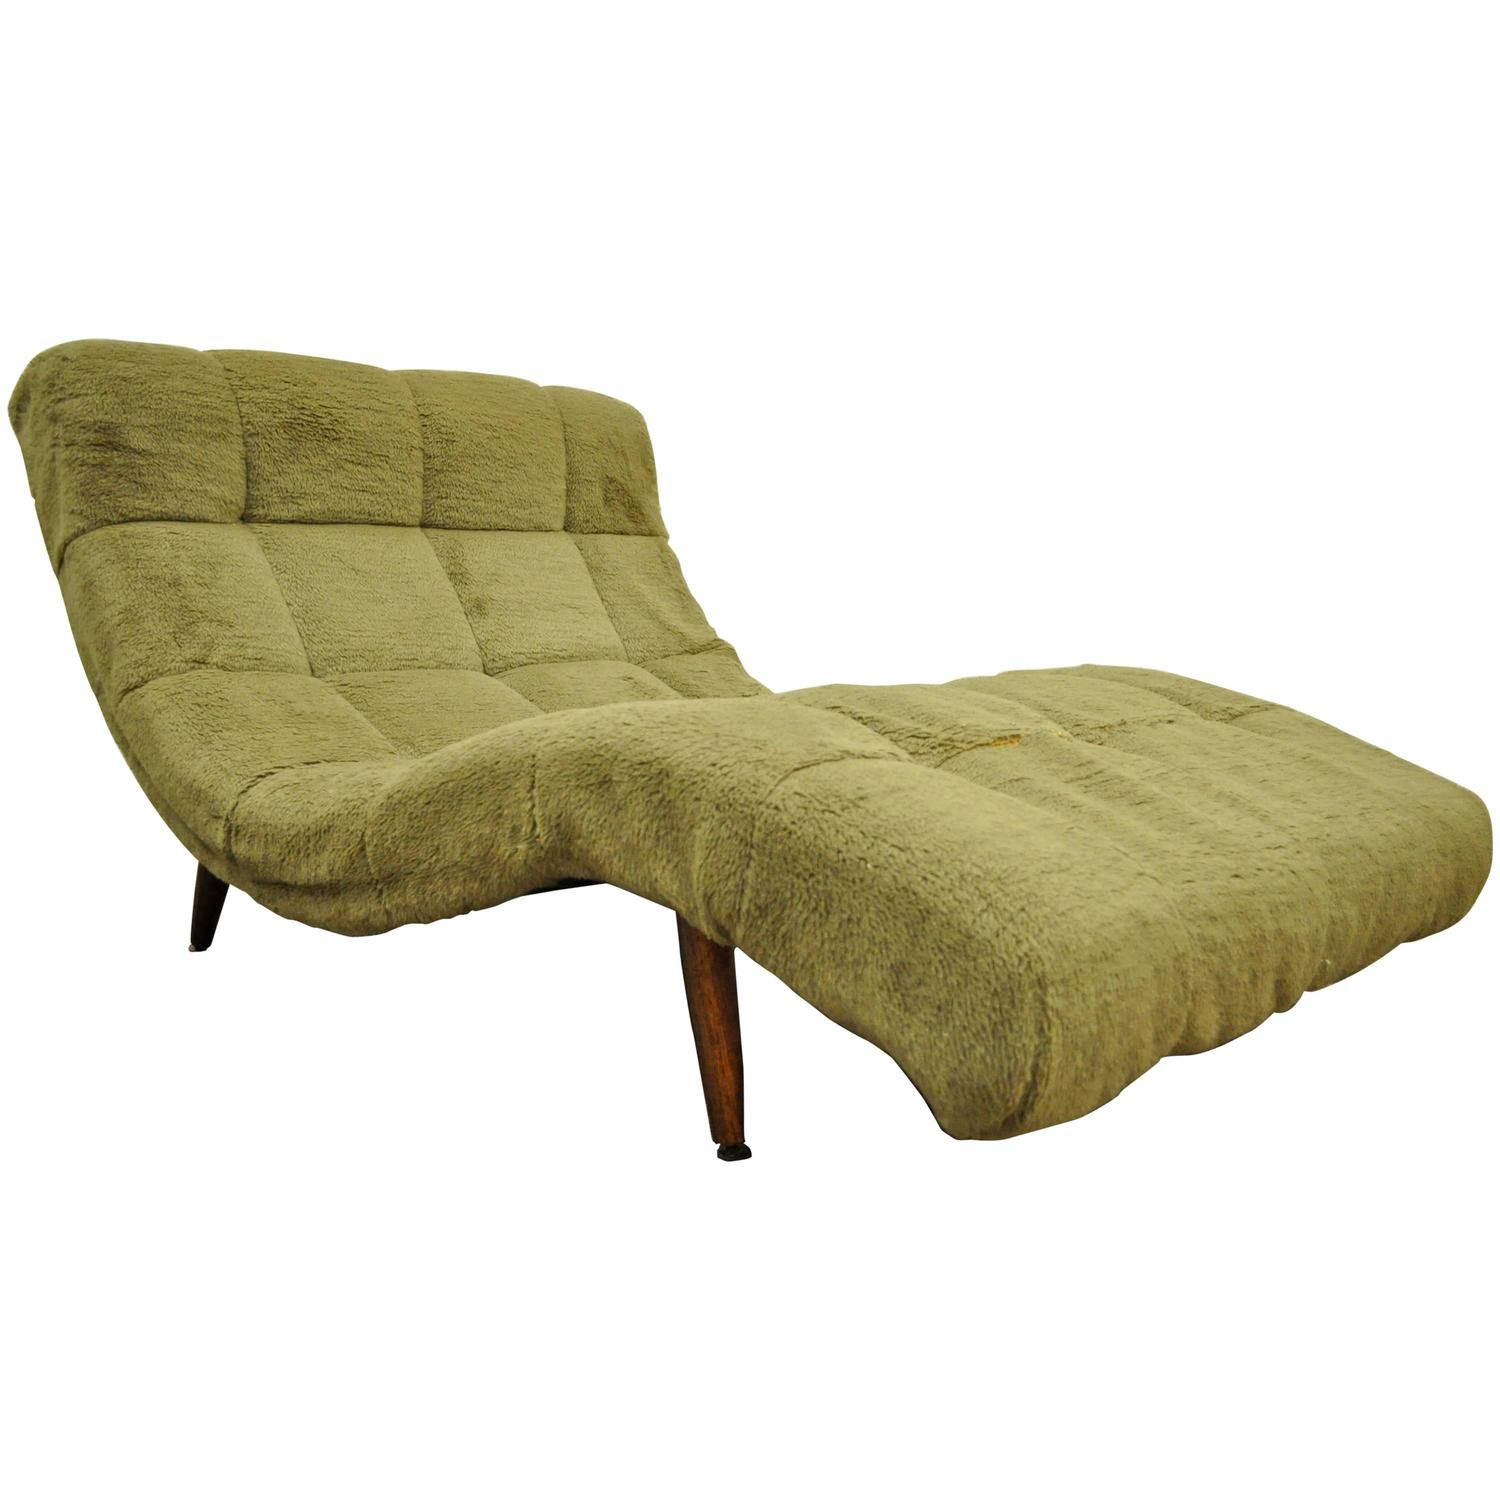 pictures of chaise lounge chairs graco contempo high chair reviews mid century modern double wide green wave attr to adrian pearsall for sale at 1stdibs